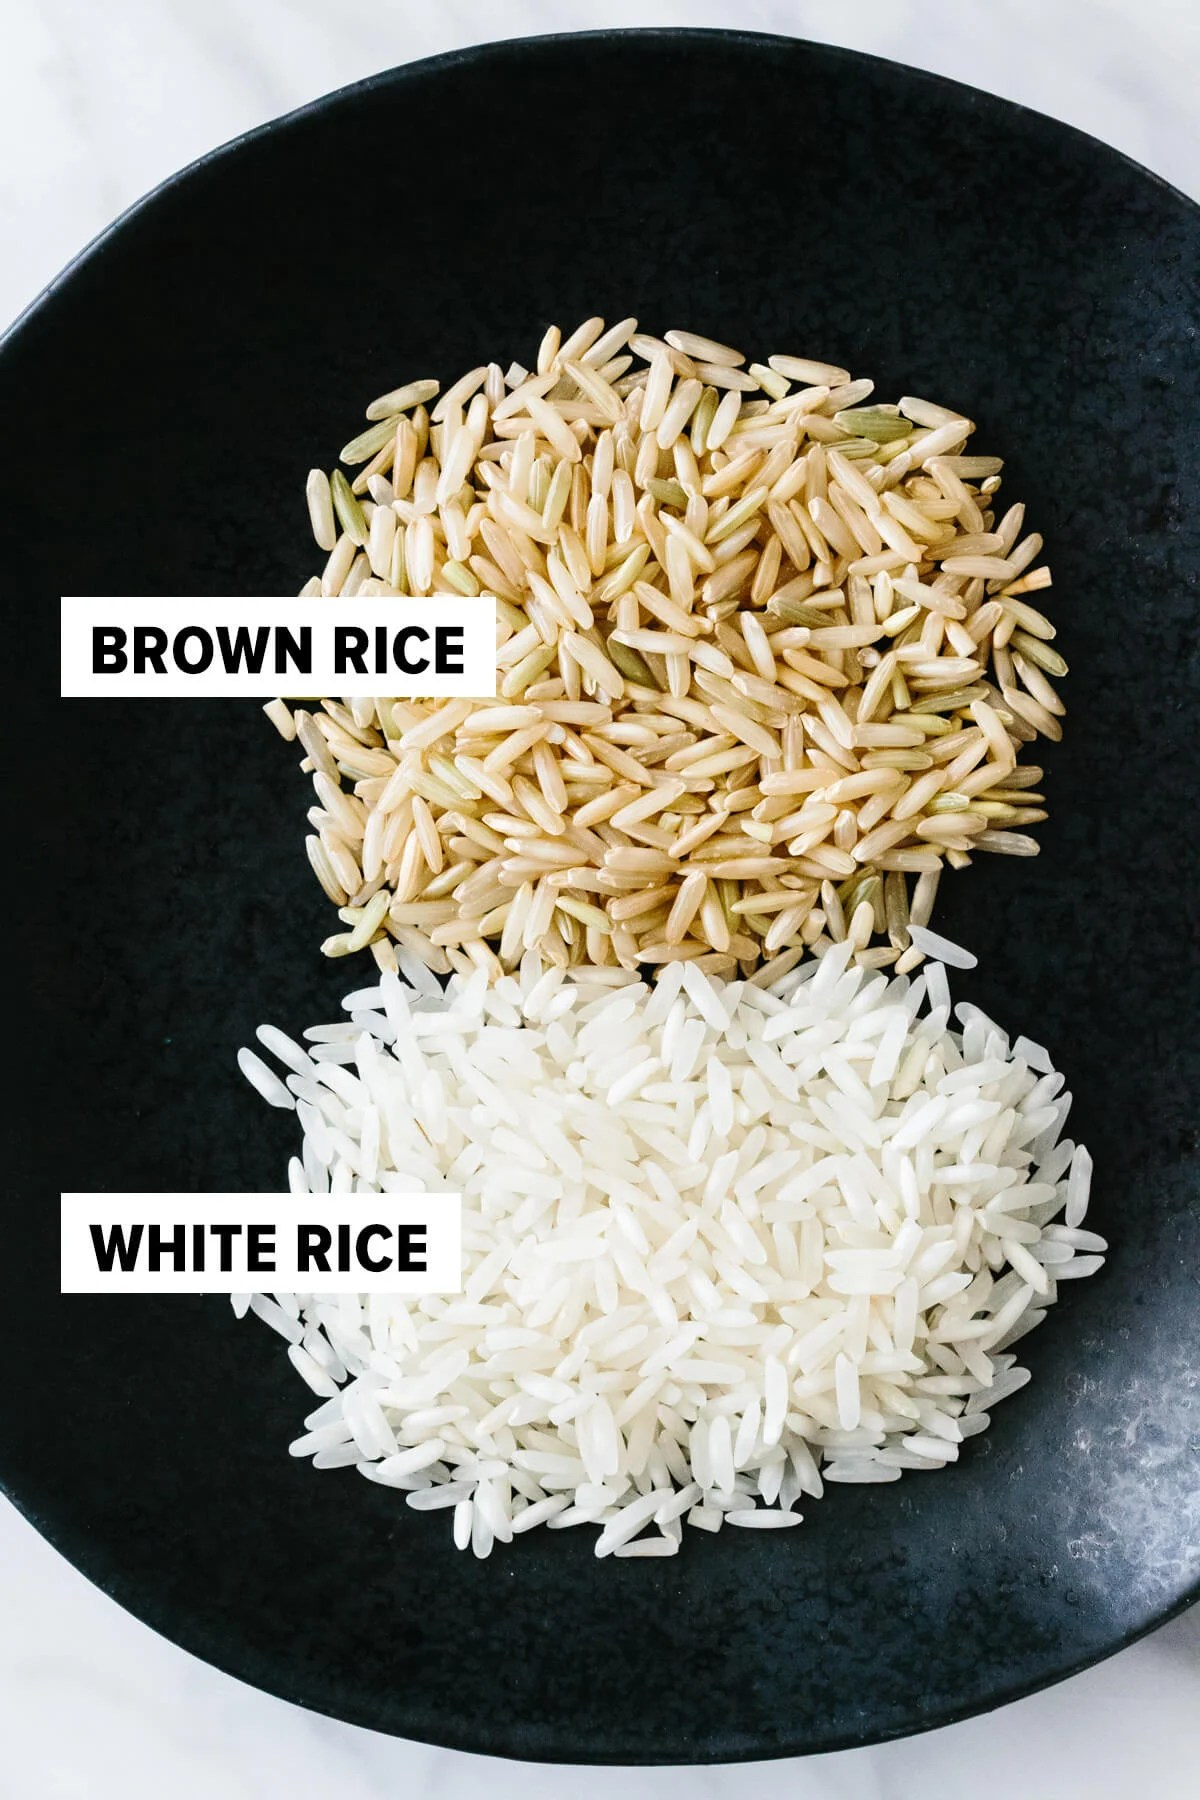 Brown rice and white rice on a plate.